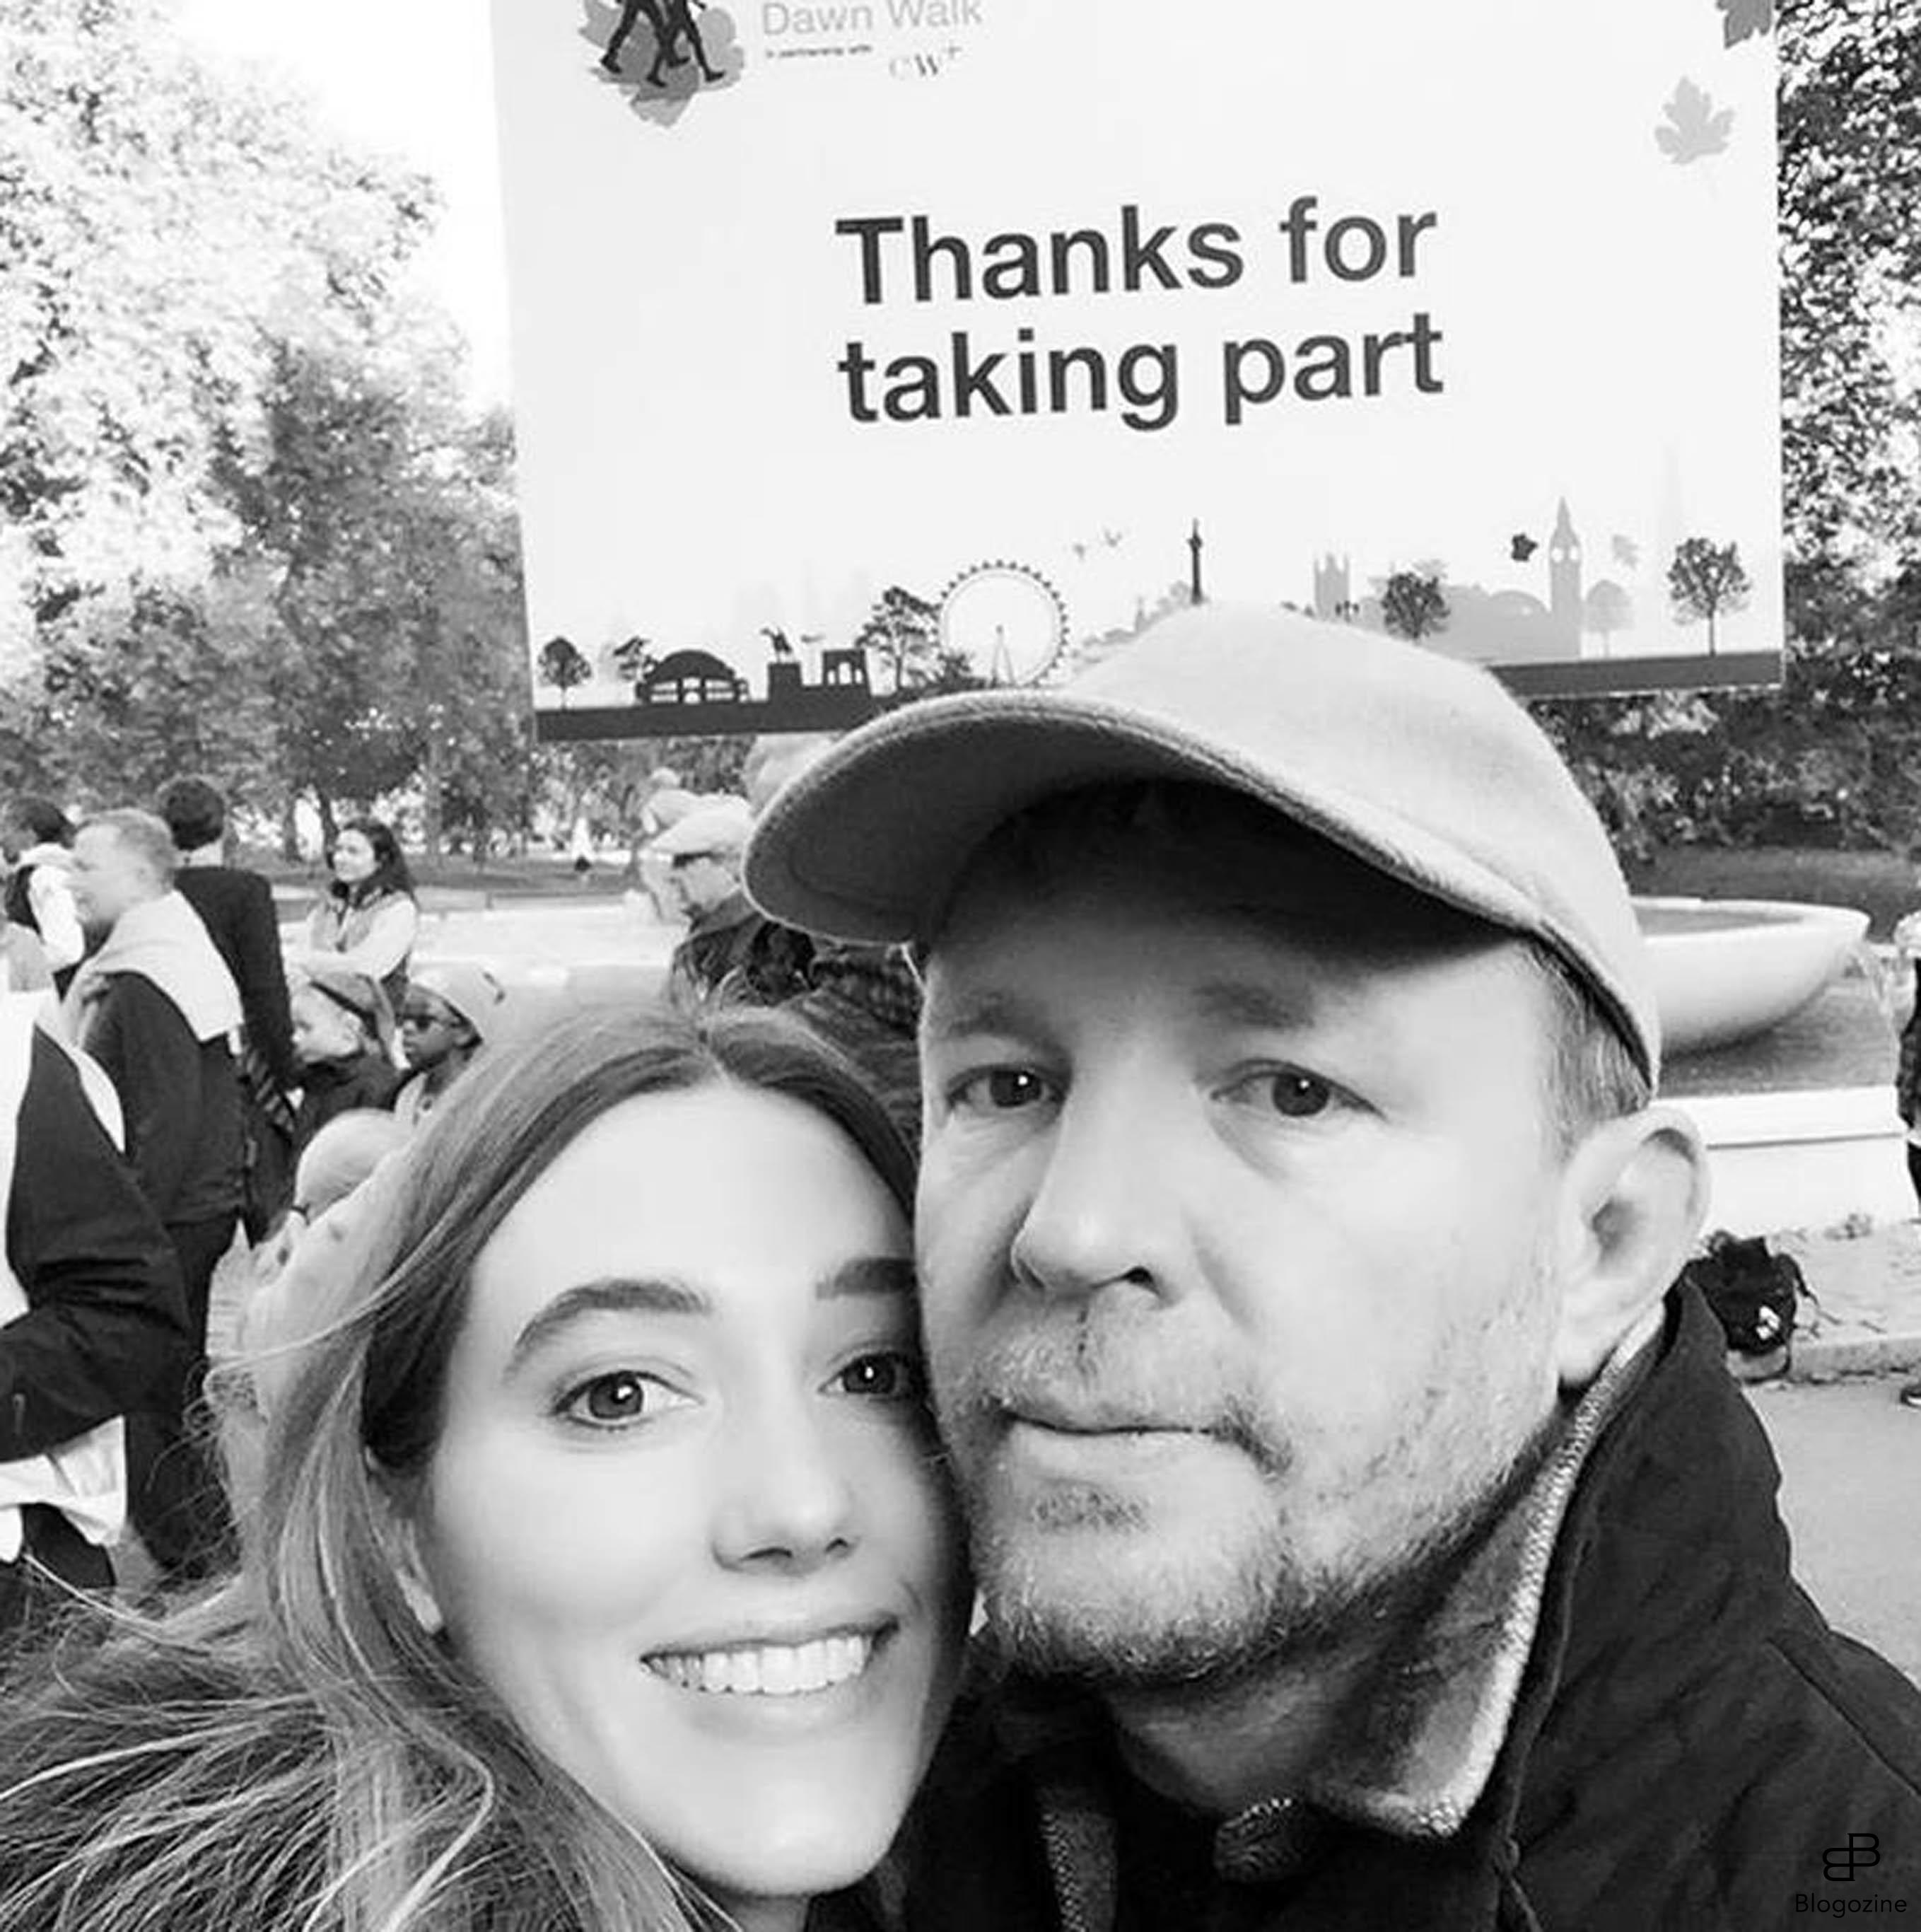 6334021 10-10-2016 Celebrity Selfies Pictured: Jacqui and Guy Ritchie PLANET PHOTOS www.planetphotos.co.uk info@planetphotos.co.uk +44 (0)20 8883 1438 DISTR. STELLA PICTURES